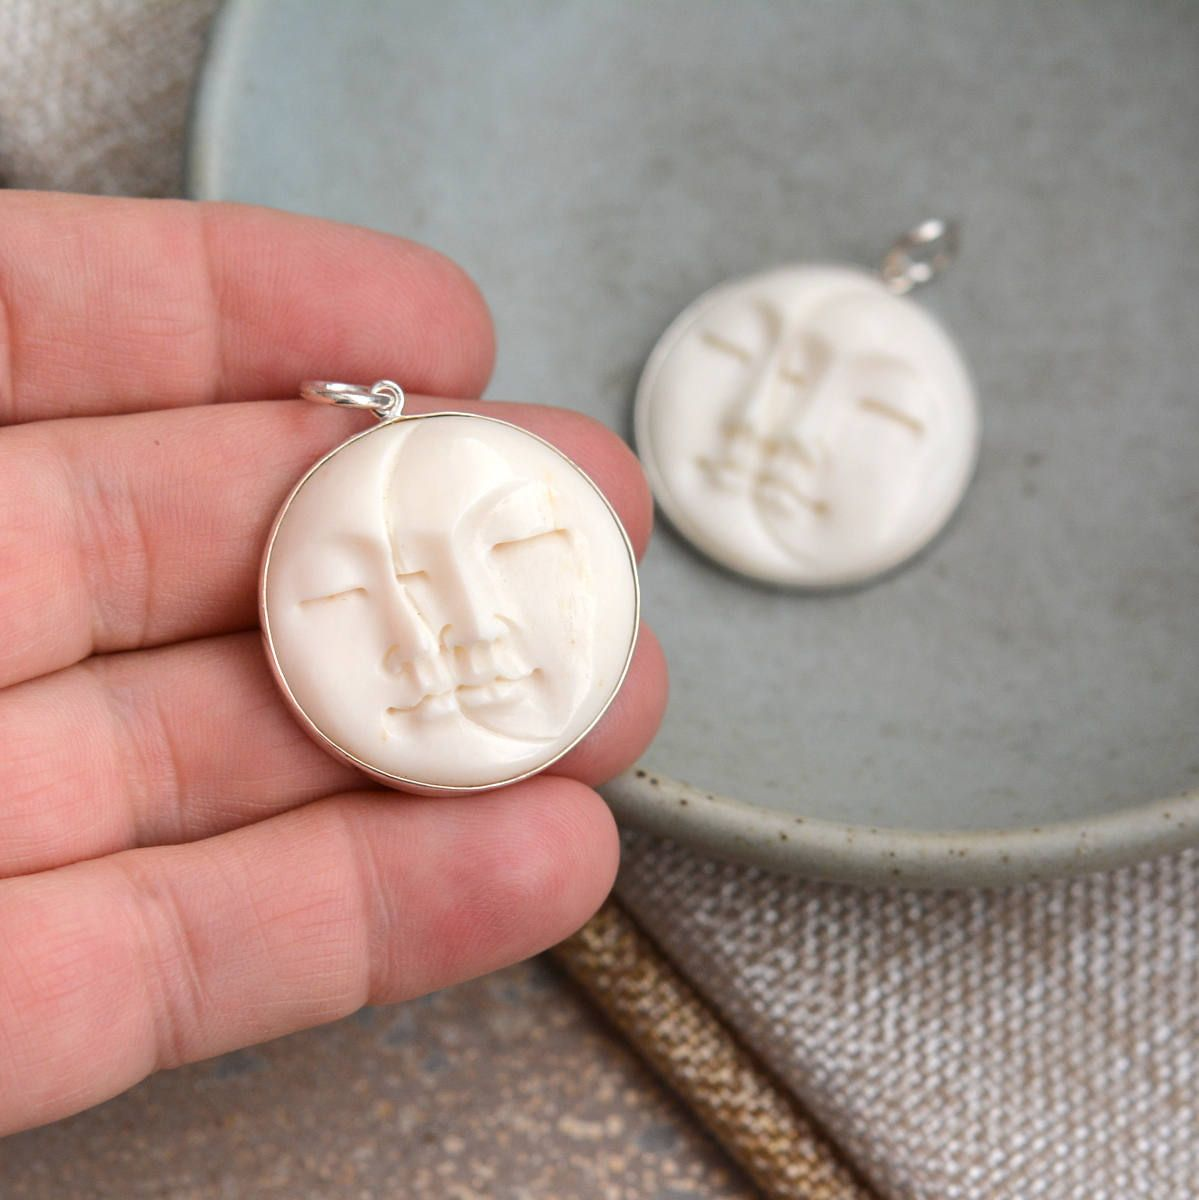 Carved Bone Moon And Sun Pendant Bali Moon Face Sterling Silver Bone Carving Sun And Moon Pendant St17 030 Bone Carving Moon Pendant Diy Jewelry Making Supplies